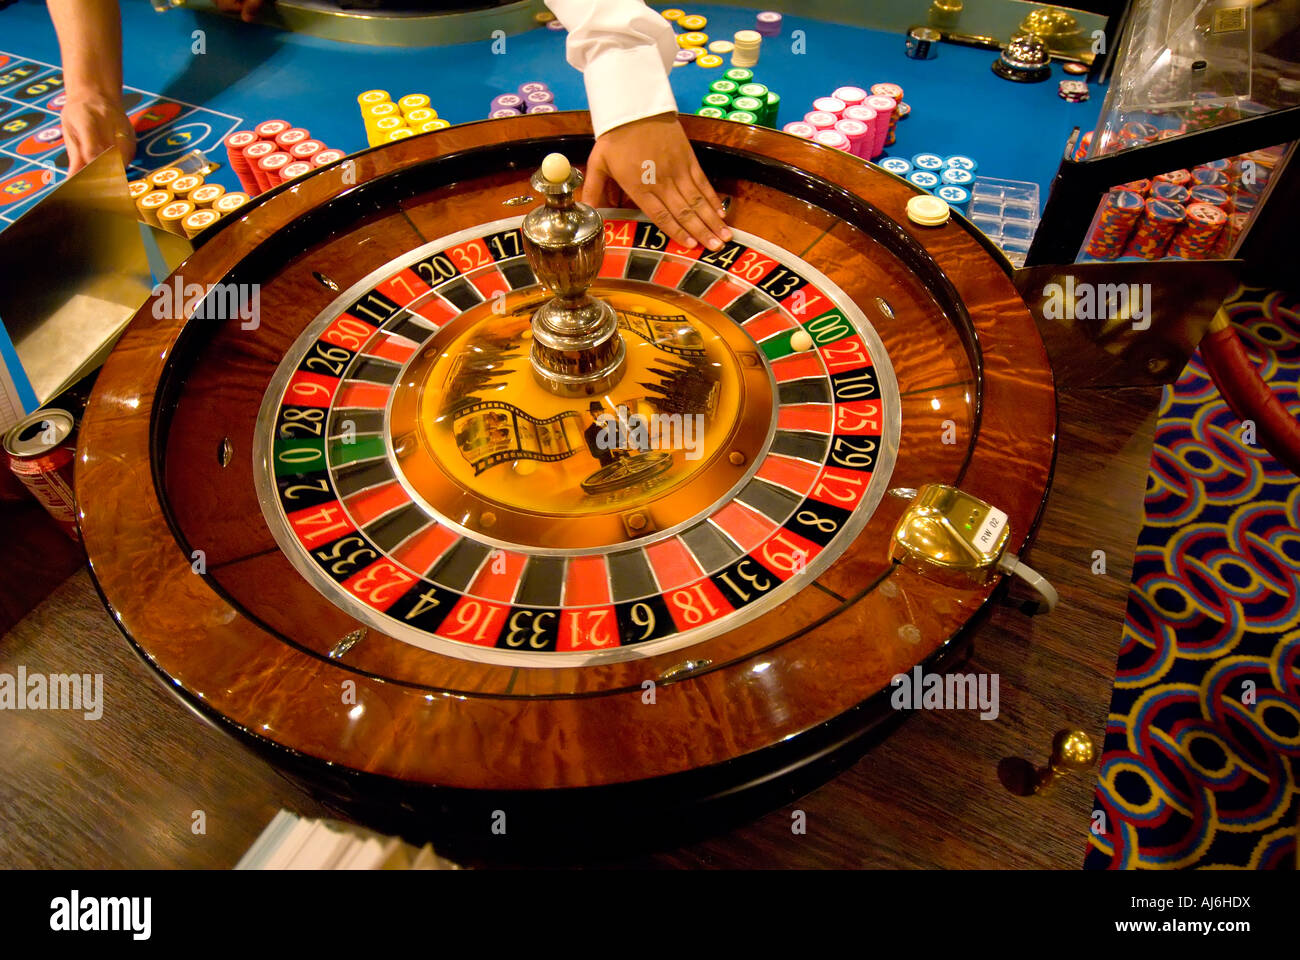 online casino roulette strategy king of cards